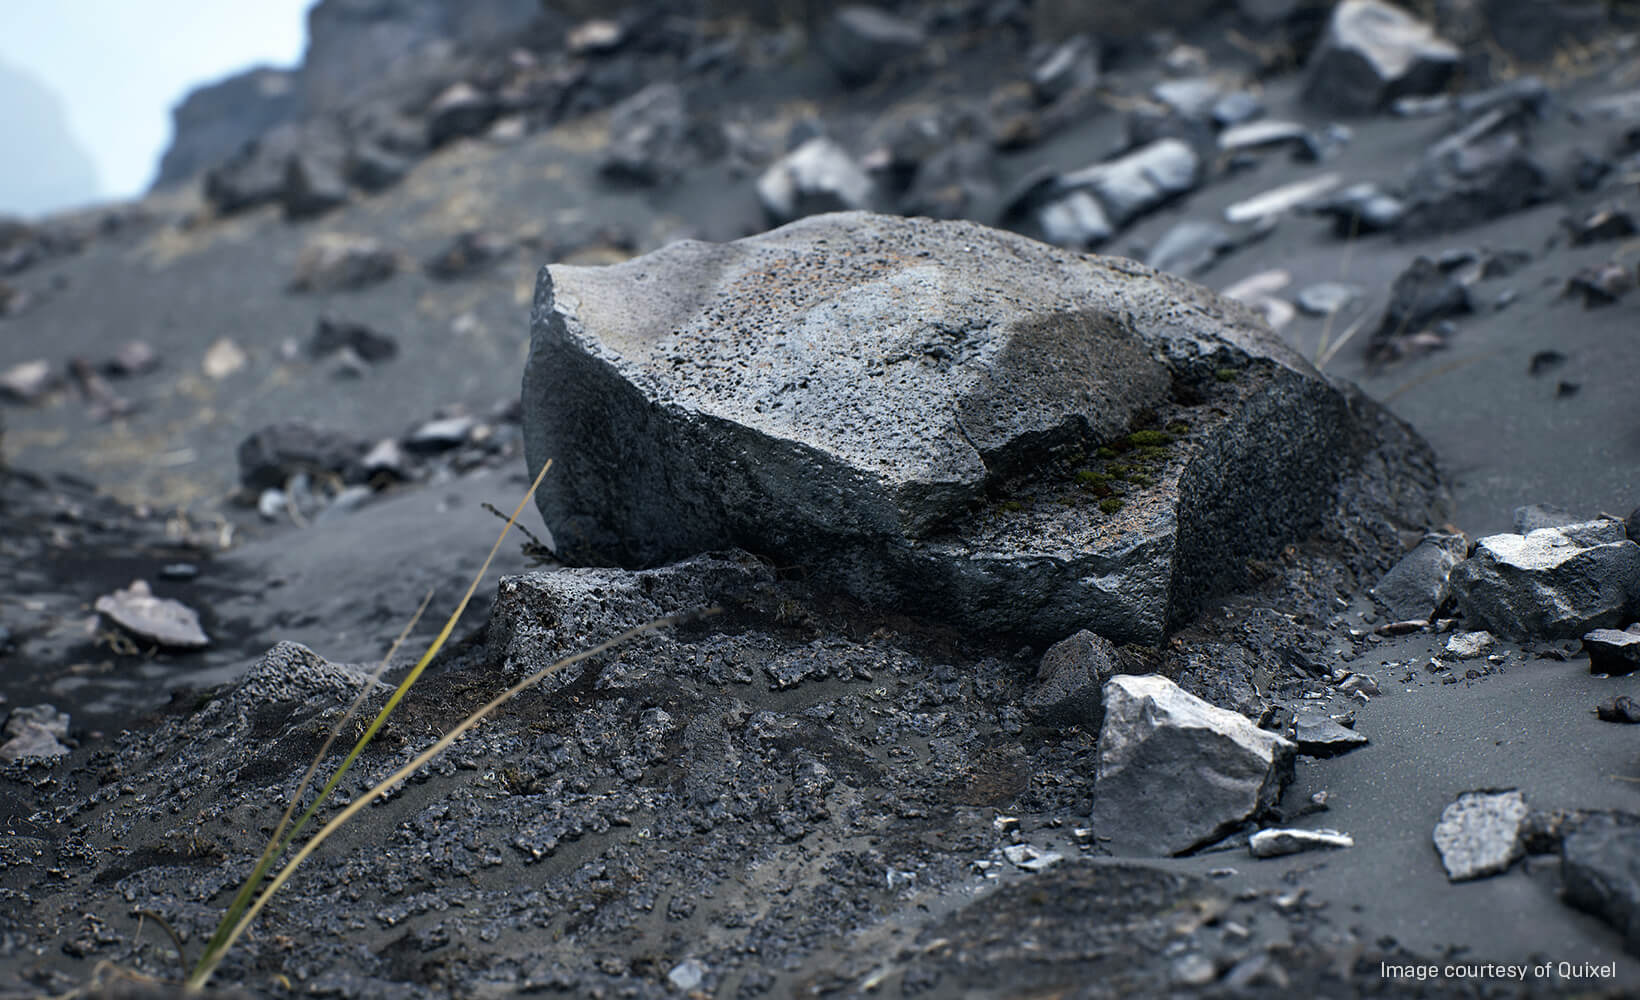 Unreal+Engine_blog_unreal-engine-4-24-to-ship-with-free-quixel-megascans-unreal-studio-features-and-more_News_OneUnrealEngine_blog_body_img4-1640x1000-f8c62582f595e832965719e6eb5e1e57d76de18b